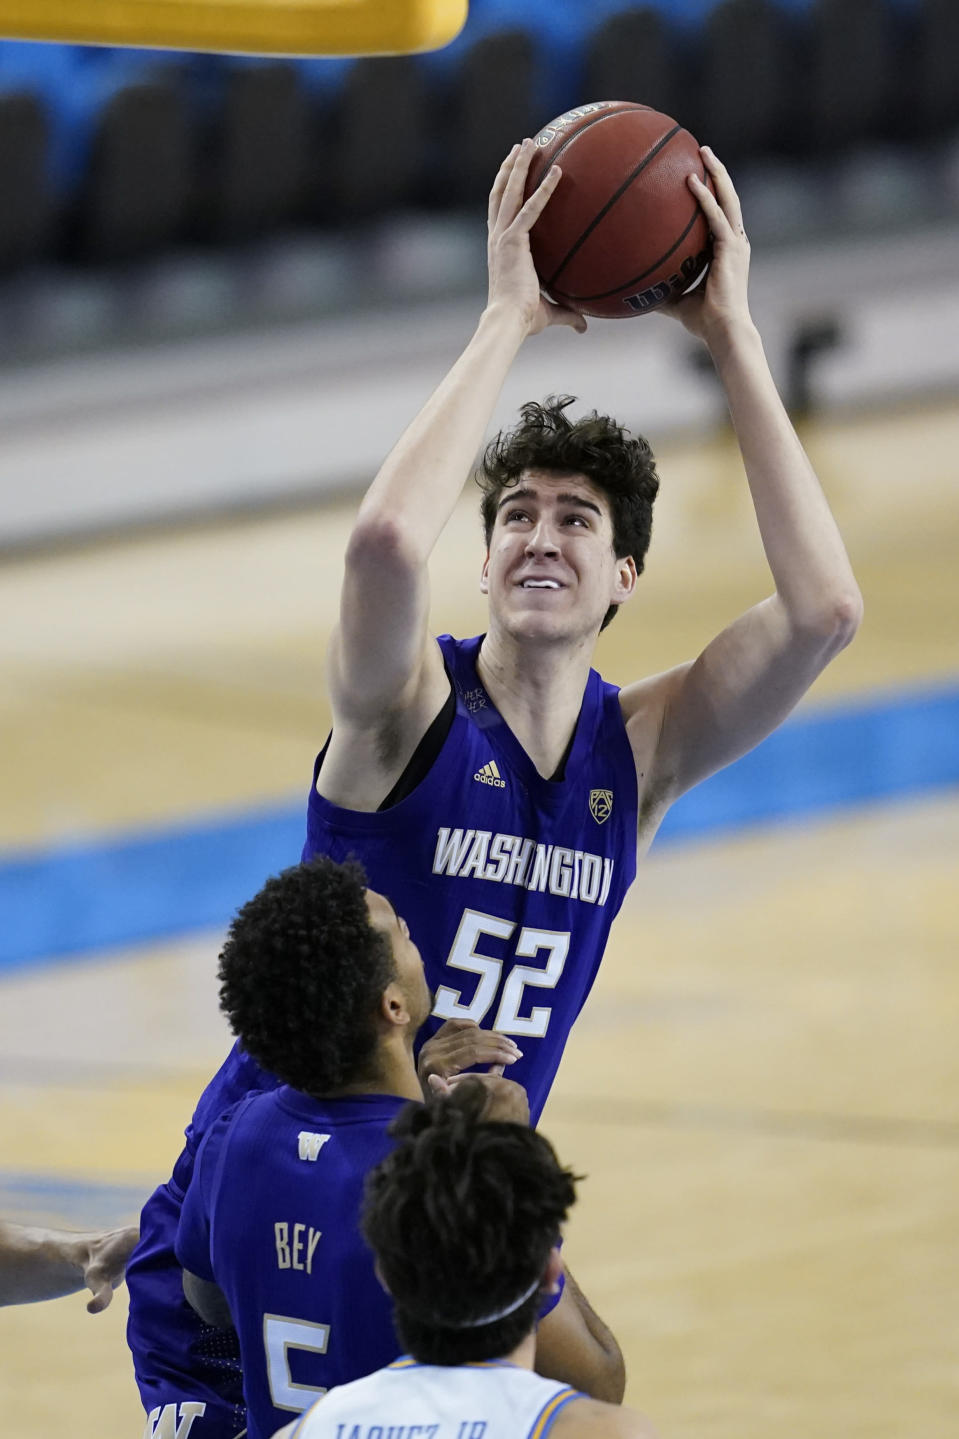 Washington center Riley Sorn (52) takes a shot during the first half of an NCAA college basketball game against the UCLA Saturday, Jan. 16, 2021, in Los Angeles. (AP Photo/Ashley Landis)